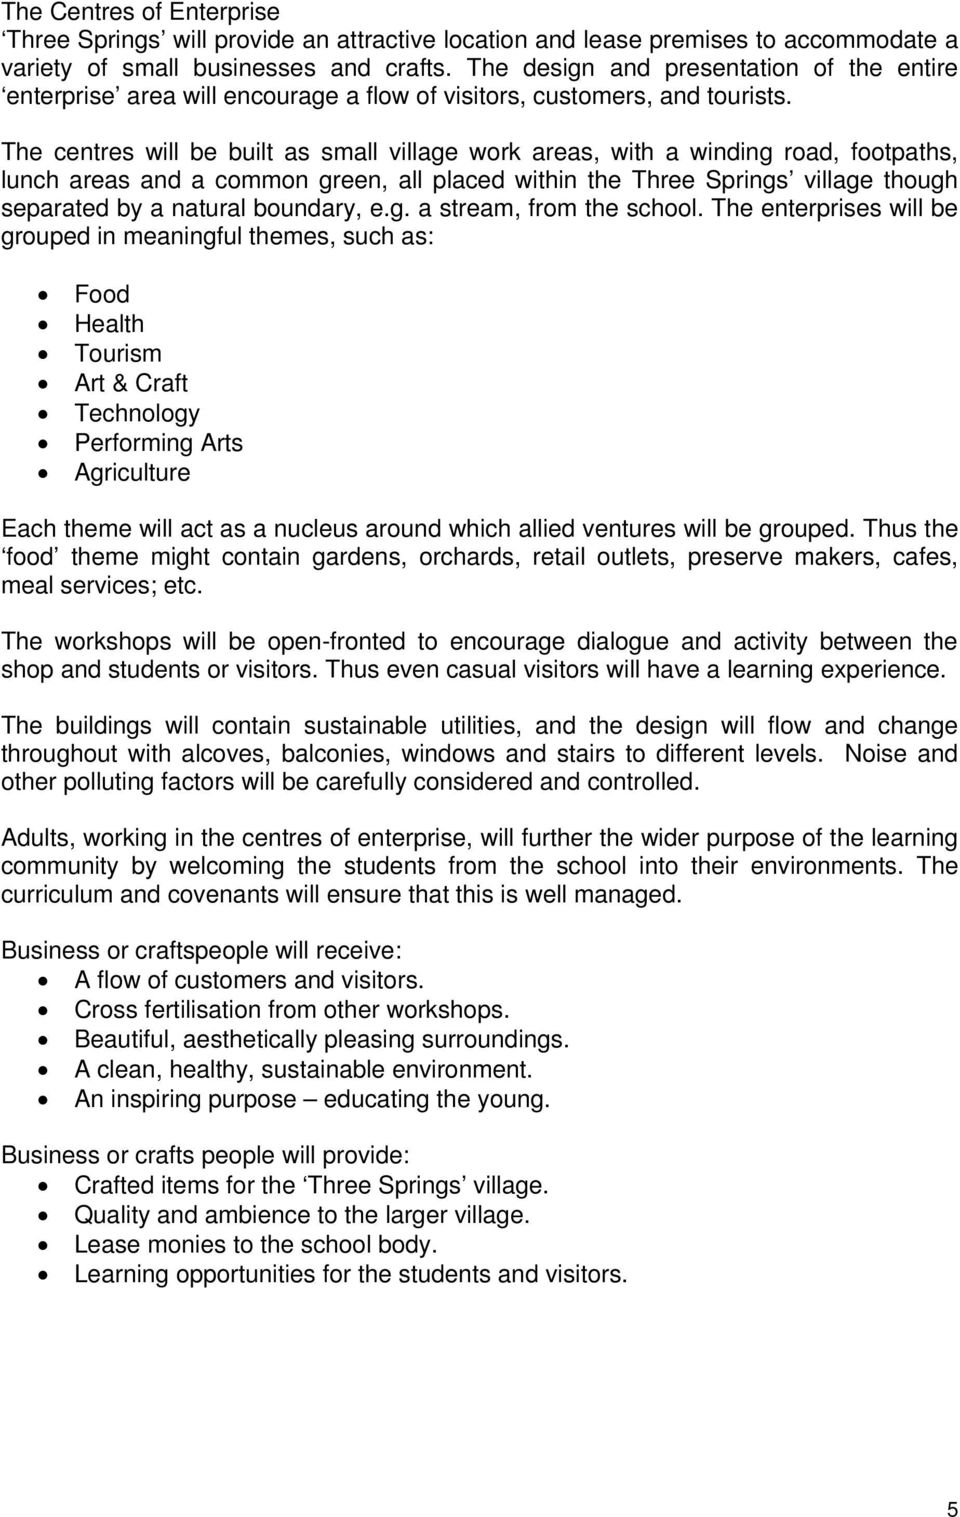 The centres will be built as small village work areas, with a winding road, footpaths, lunch areas and a common green, all placed within the Three Springs village though separated by a natural